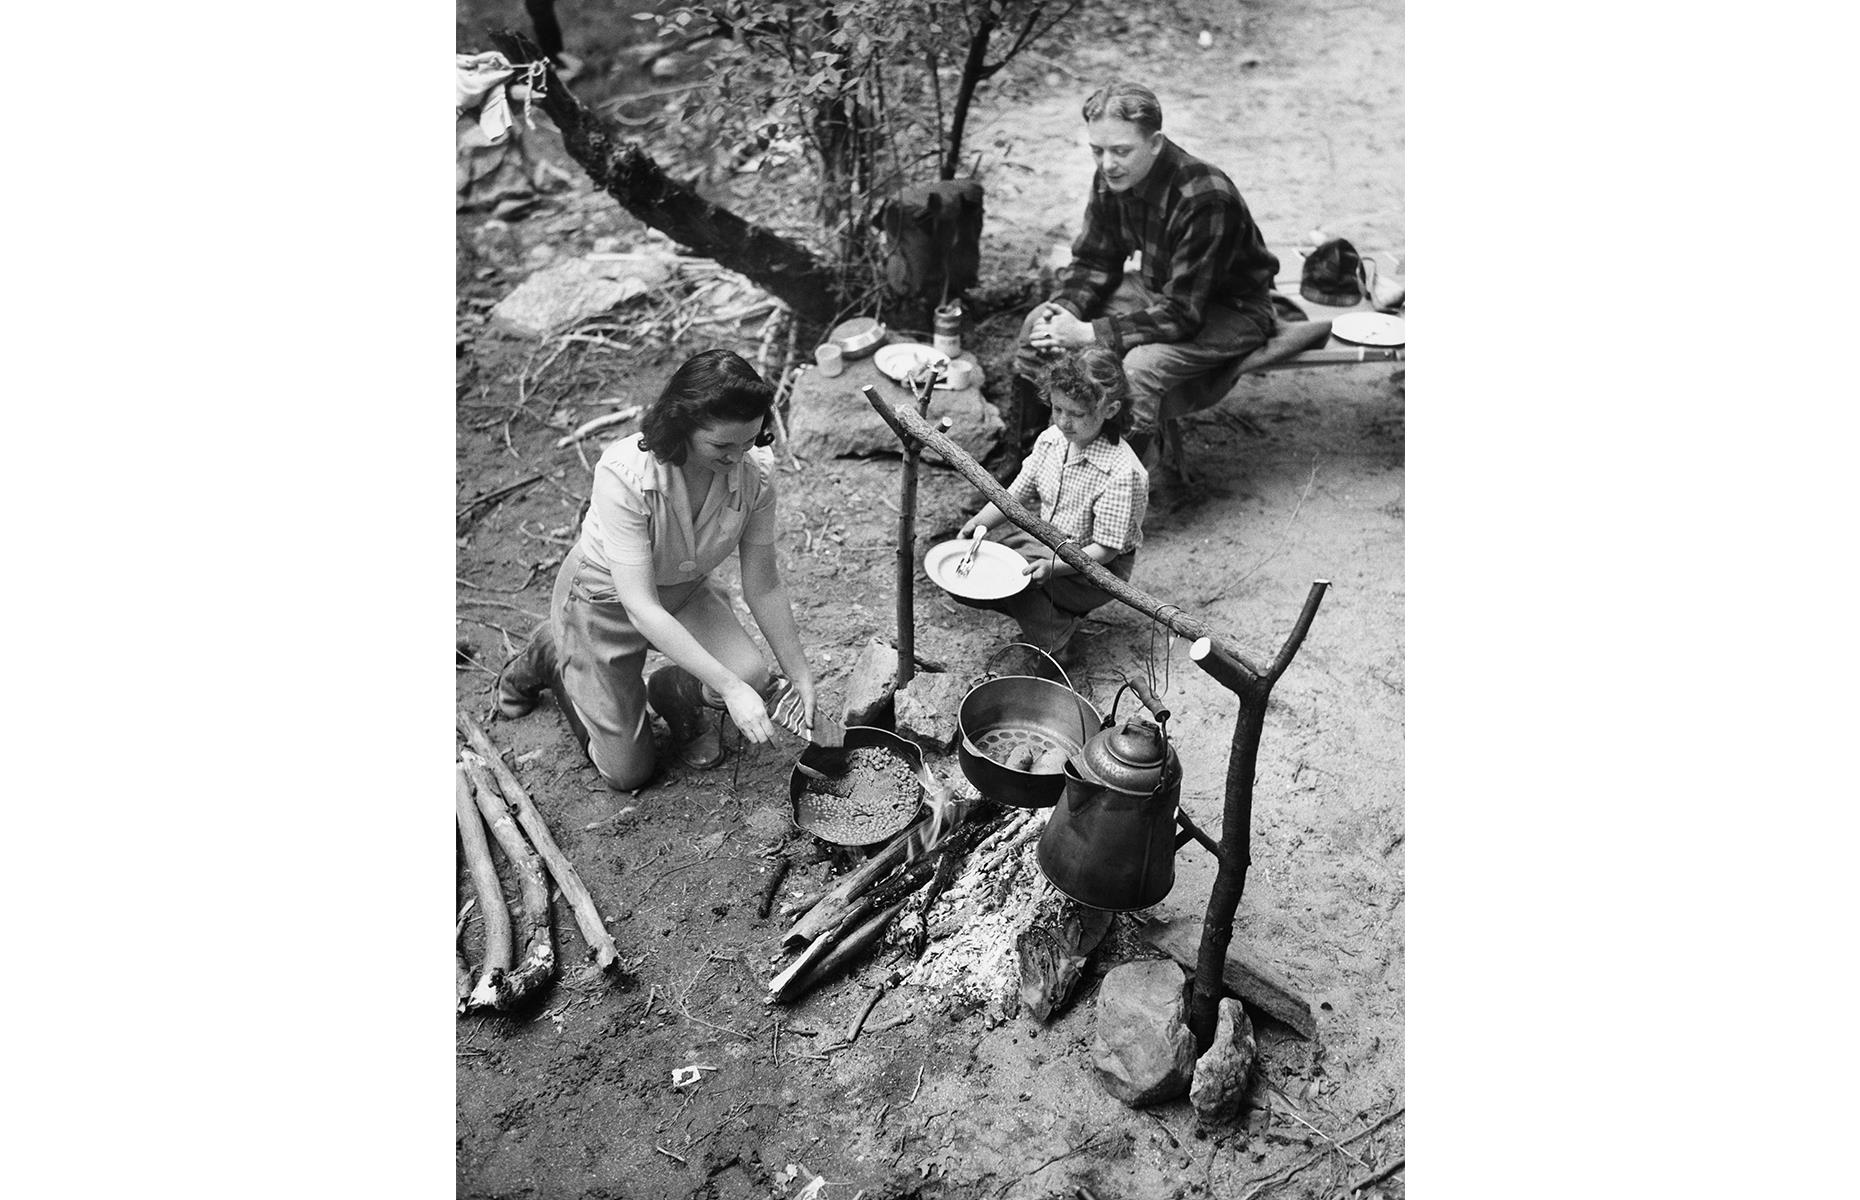 Slide 2 of 38: This was a decade shaped by the Second World War and, even post-war, most families spent their holiday time close to home. Trailer parks and campsites were top places to escape, with destinations such as the Adirondacks, in New York, proving popular with outdoorsy types. Here a mother serves dinner cooked over a campfire to her family, perhaps after a long day of hiking.